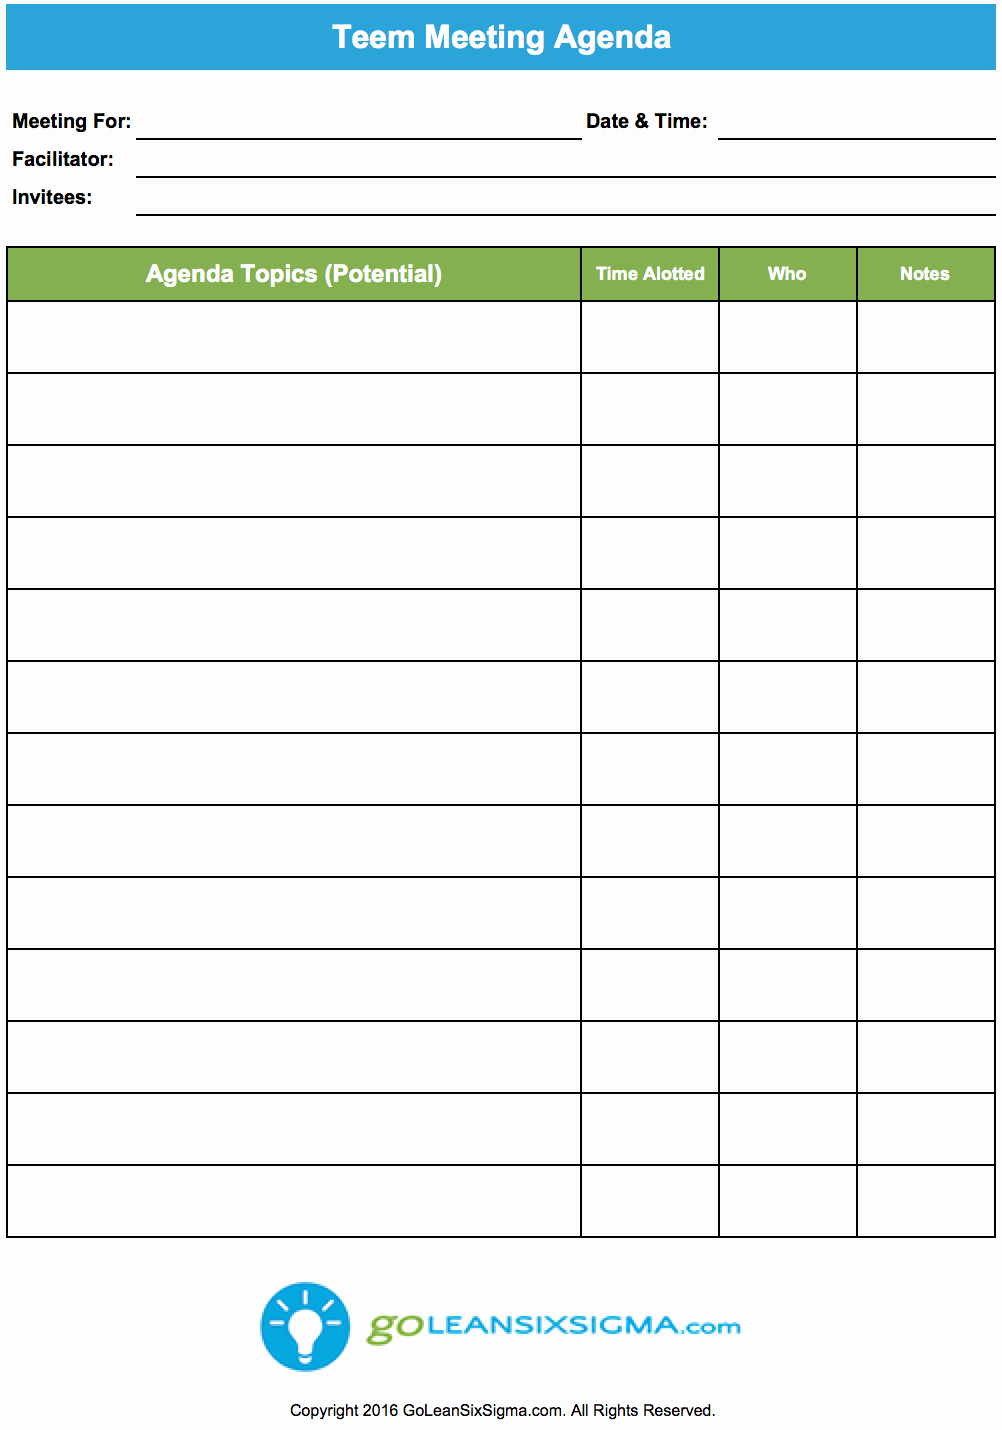 Conference Room Schedule Template Inspirational Team Meeting Agenda Goleansixsigma